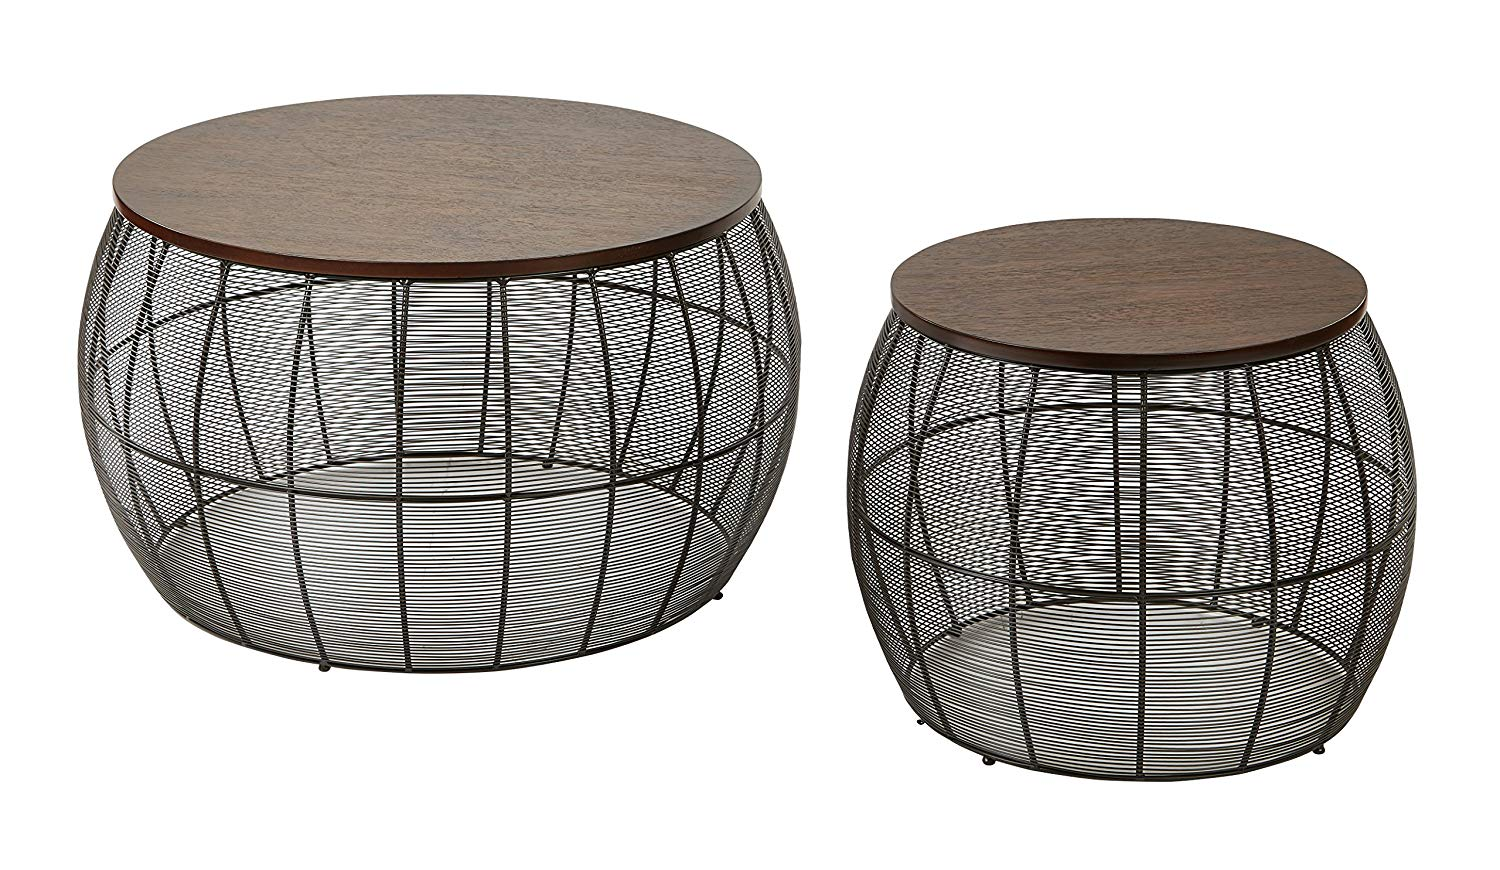 office star piece camden round metal accent tables espresso table with wood top kitchen dining small outdoor wicker jcpenney decorative pillows bedside ideas white occasional pier